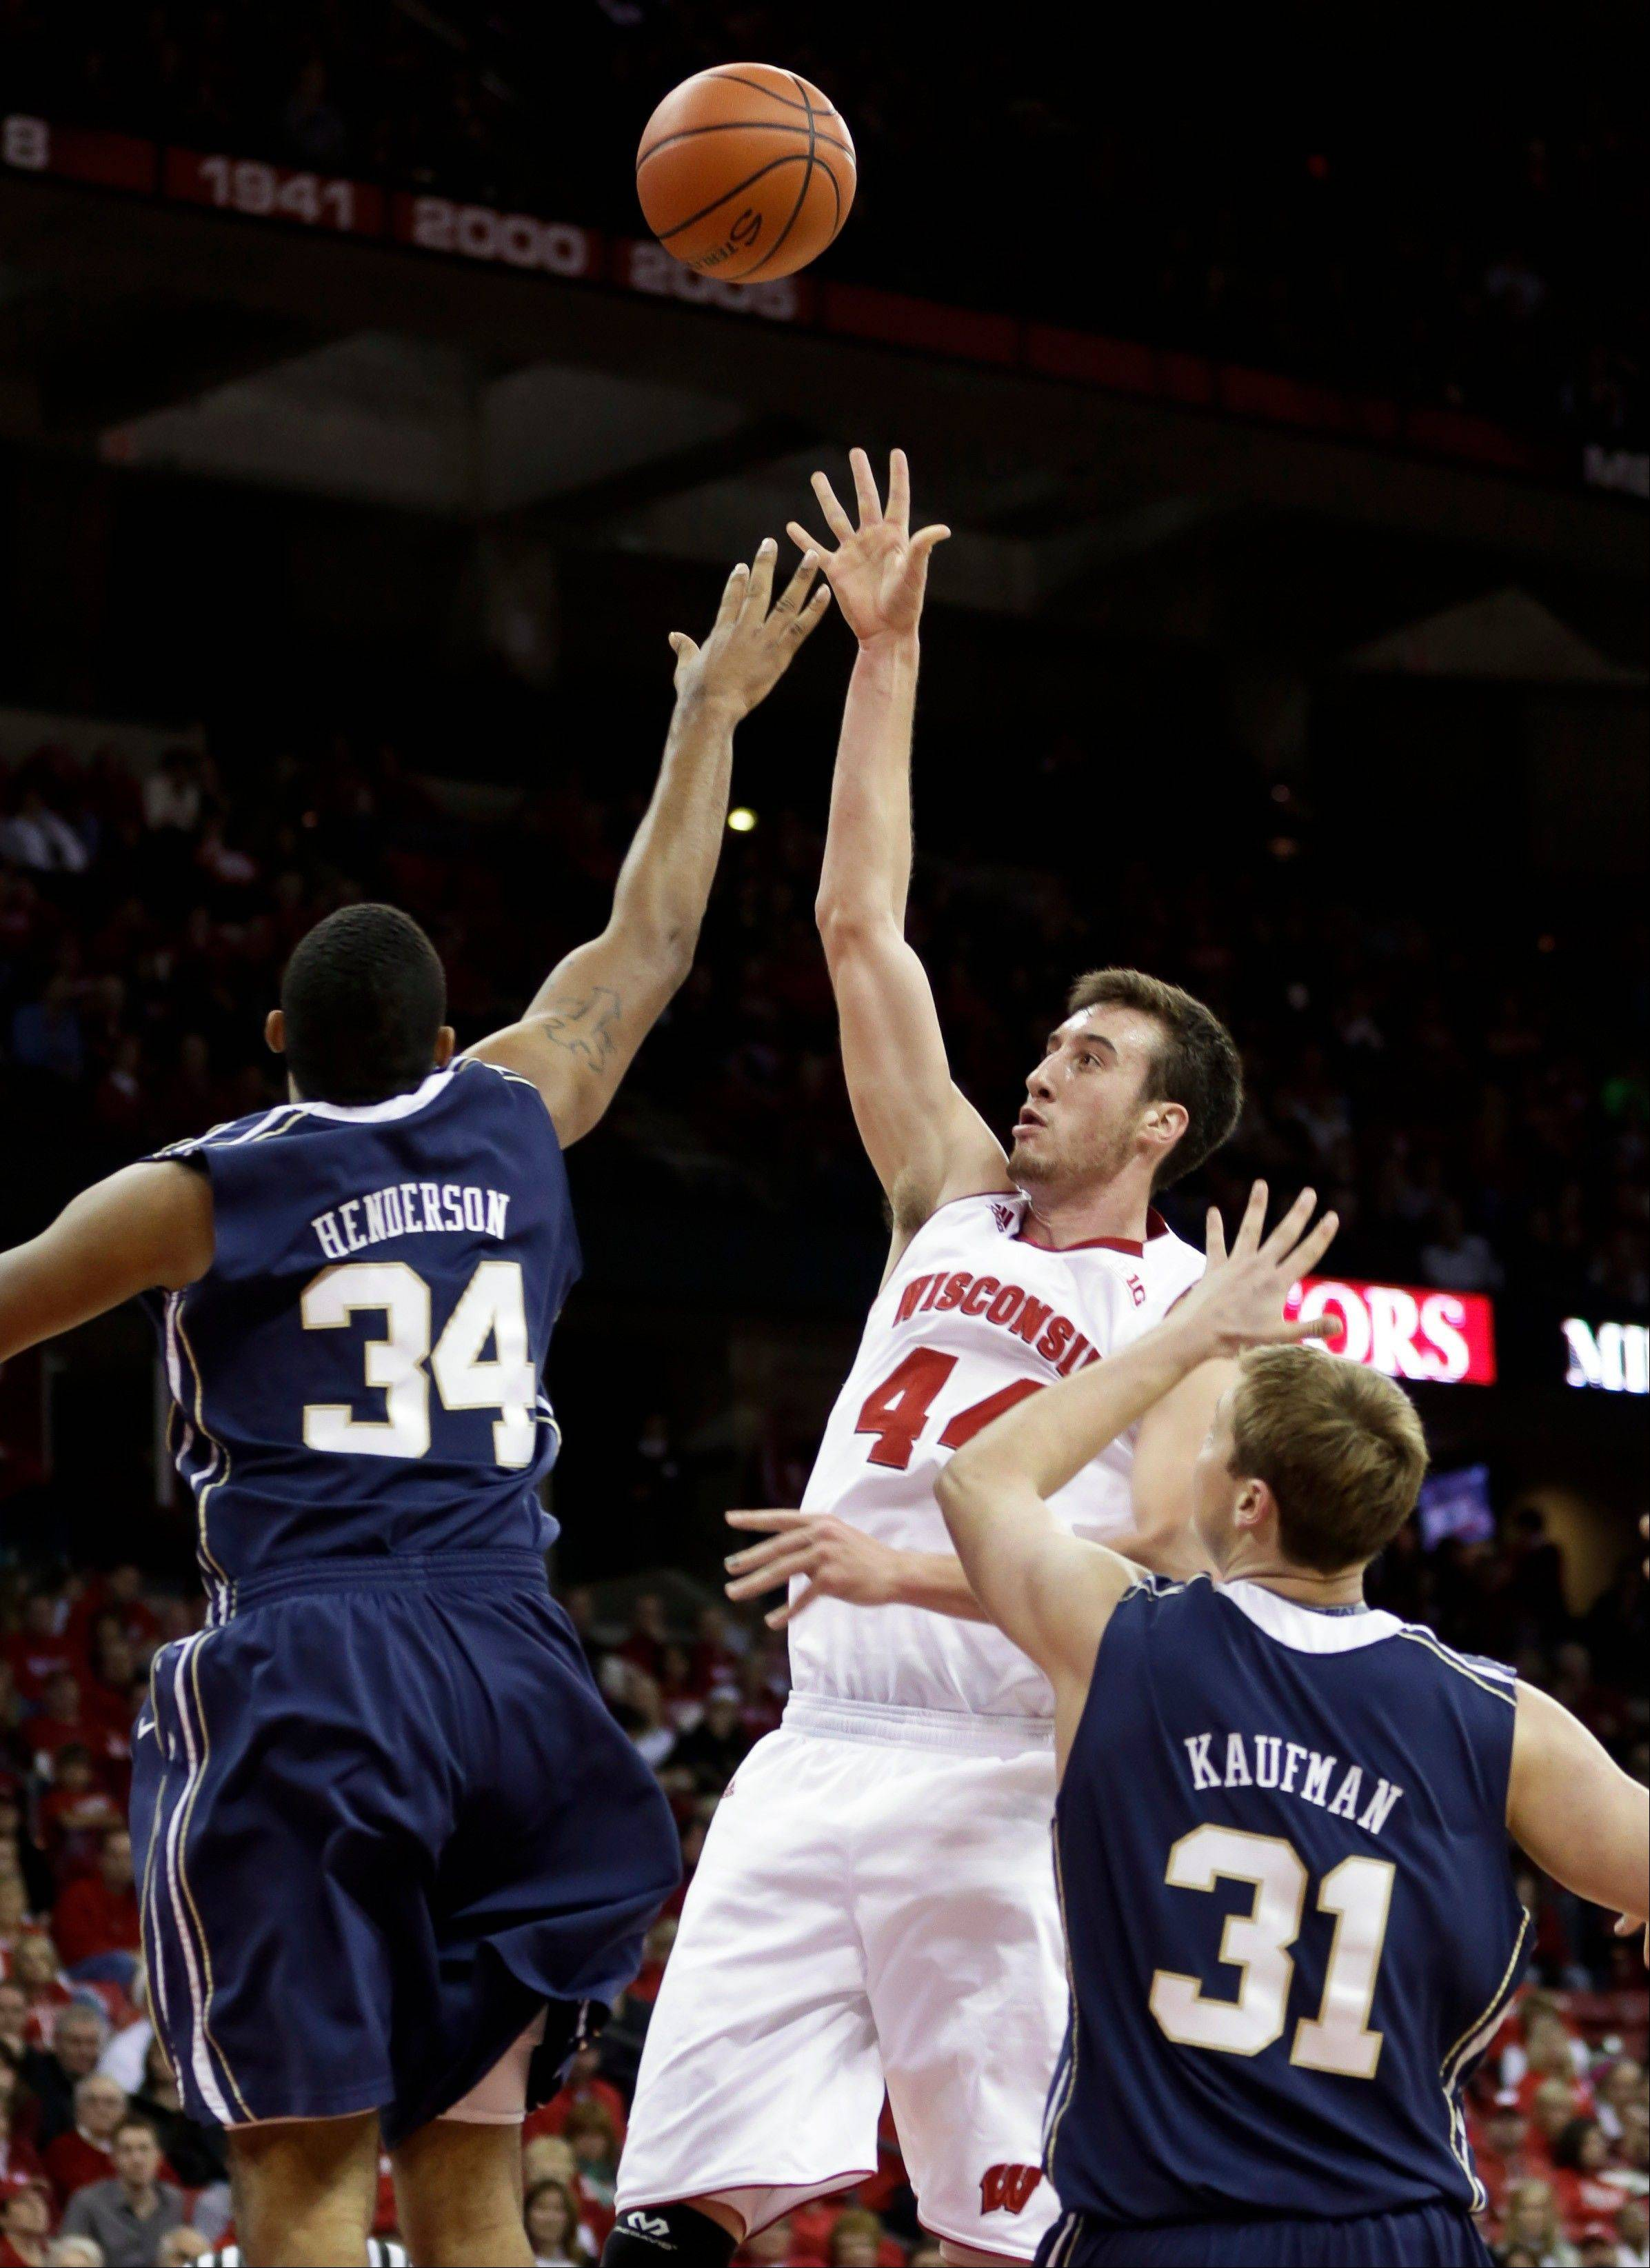 Wisconsin's Frank Kaminsky shoots past Oral Roberts' Dennell Henderson (34) and Jorden Kaufman during the second half of Saturday's game in Madison.